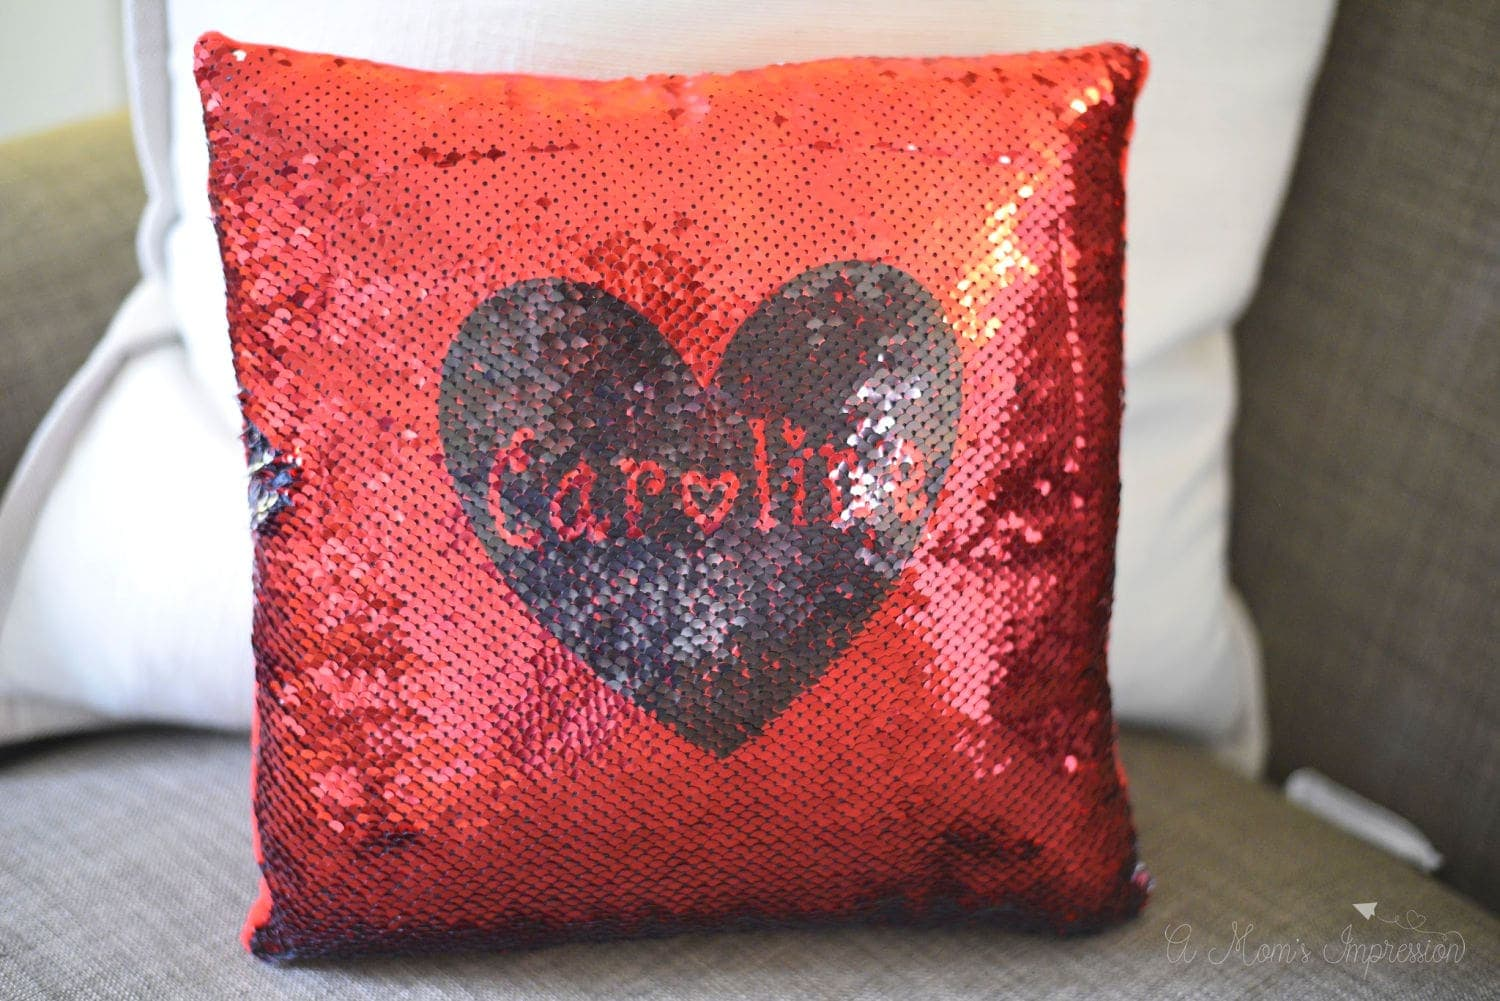 Red customized sequin pillow sitting on a sofa